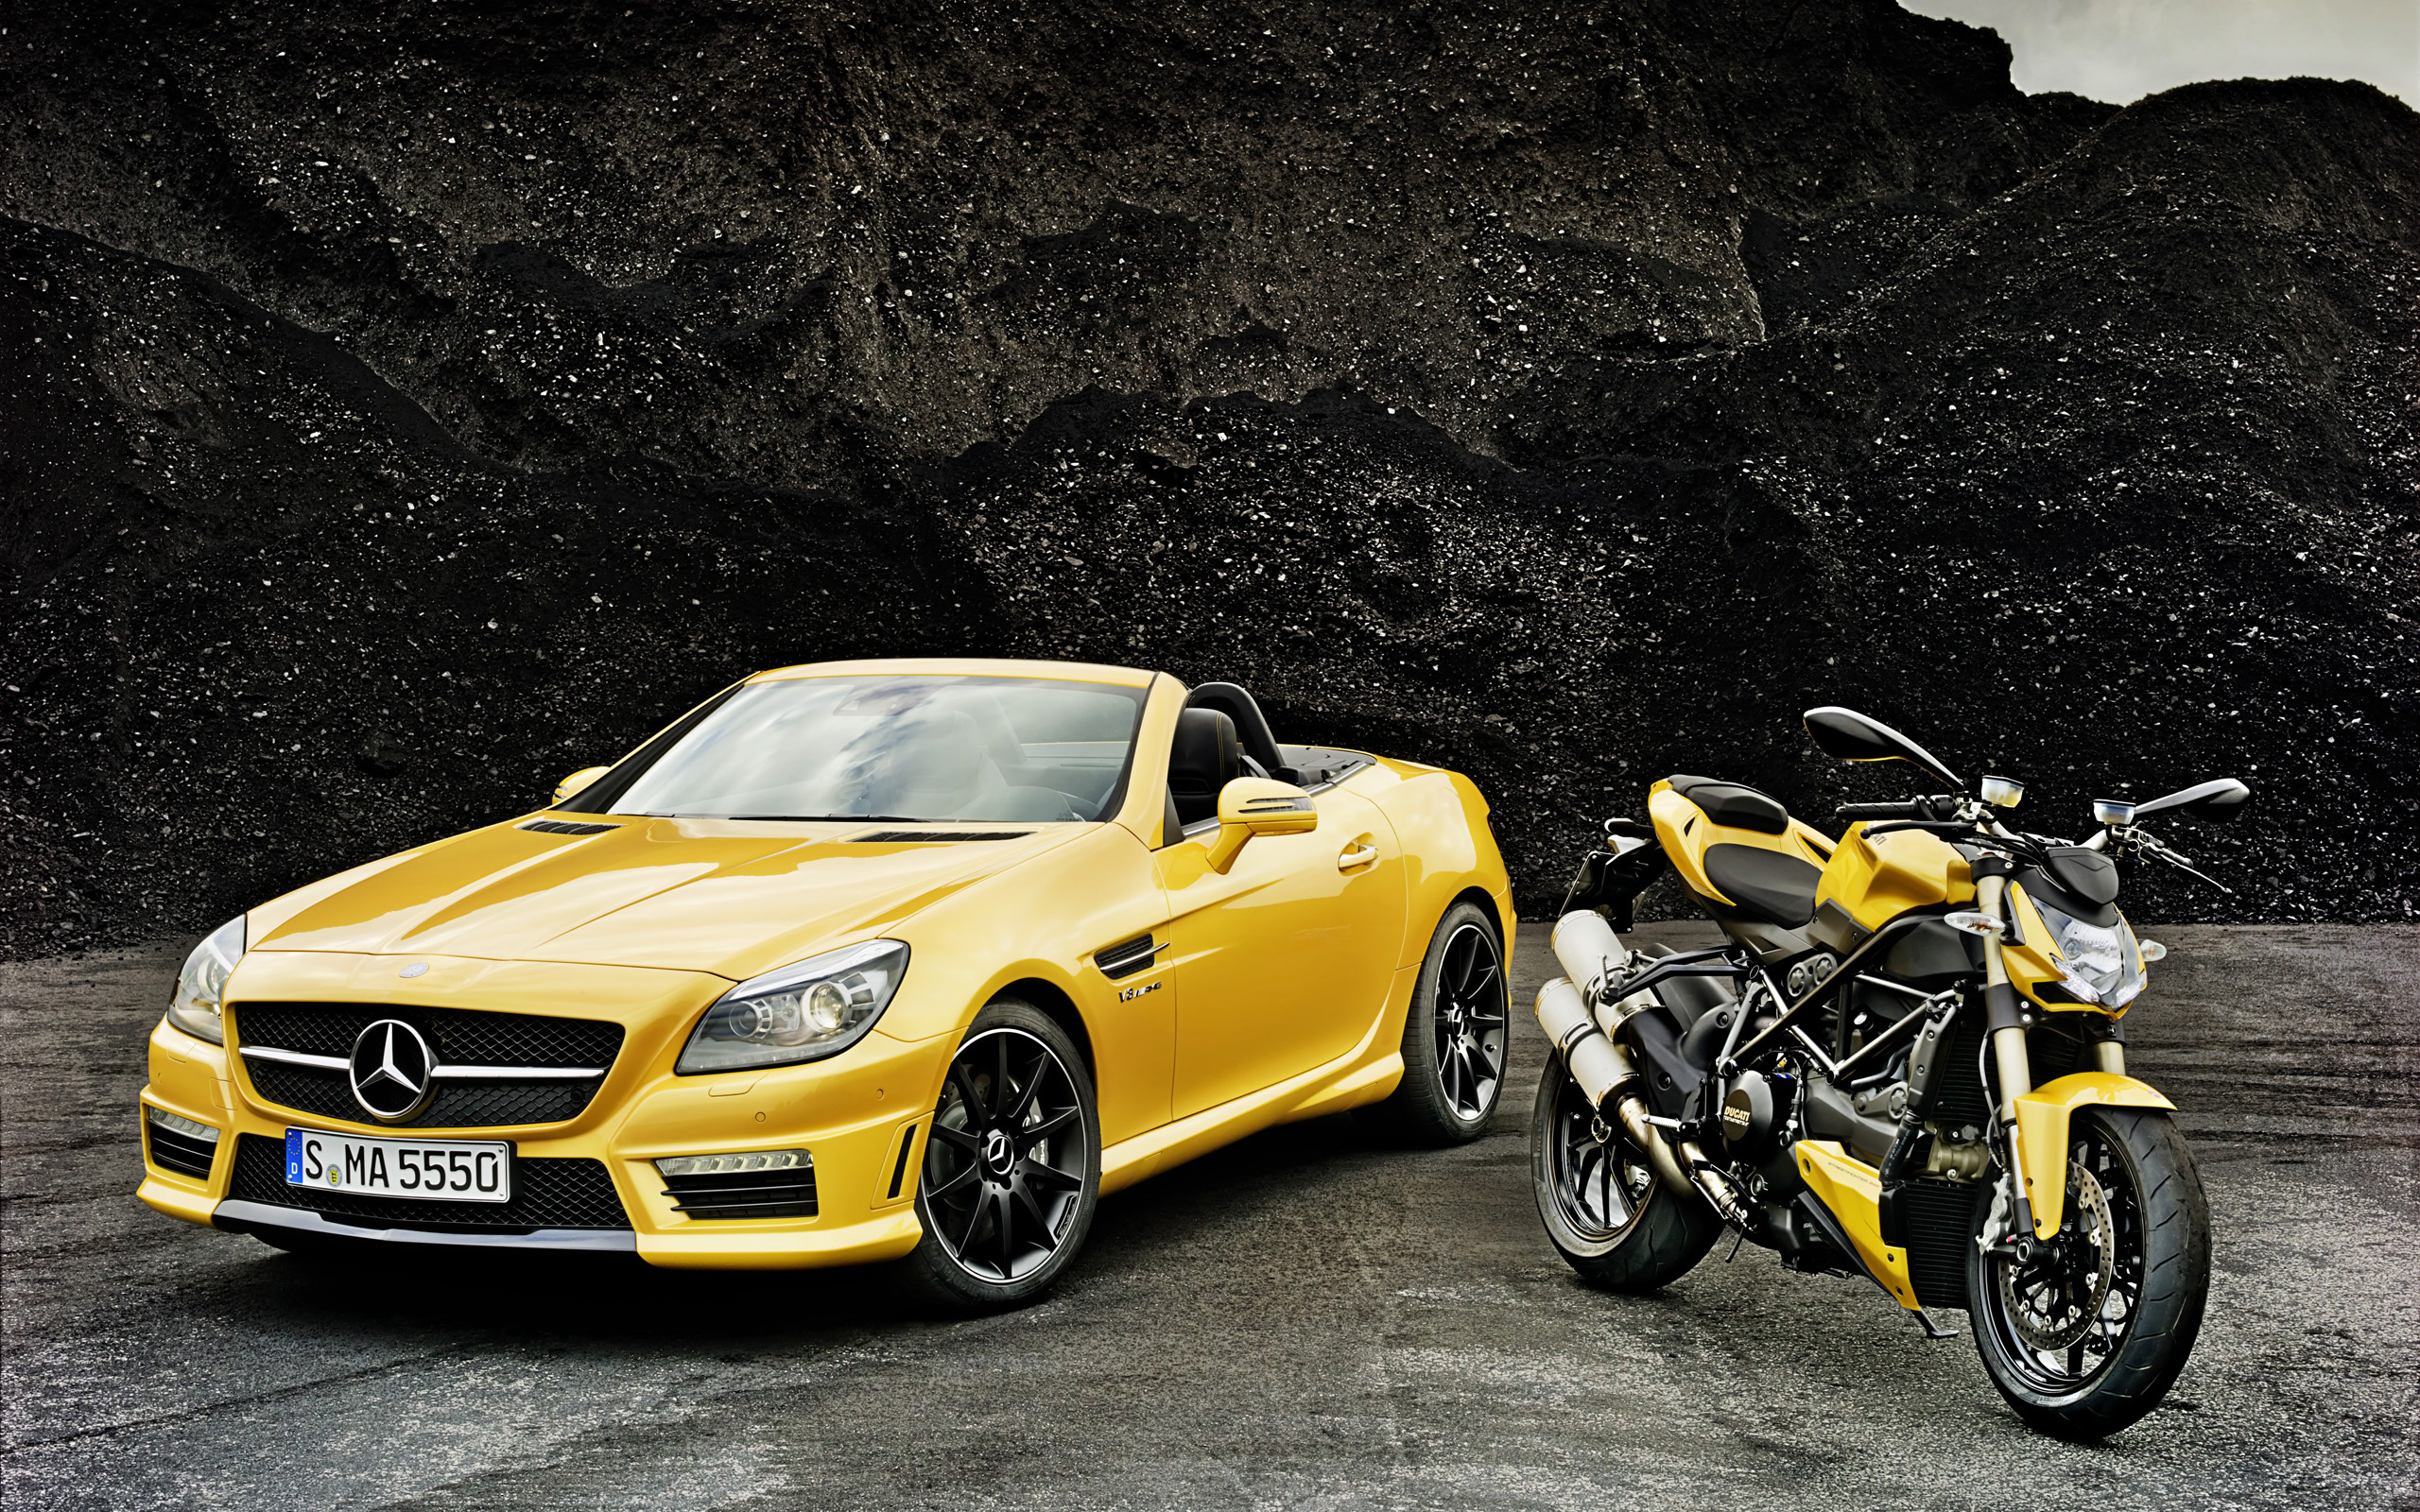 2012 Mercedes Benz Slk 55 Amg Ducati Streetfighter 848 Wallpaper